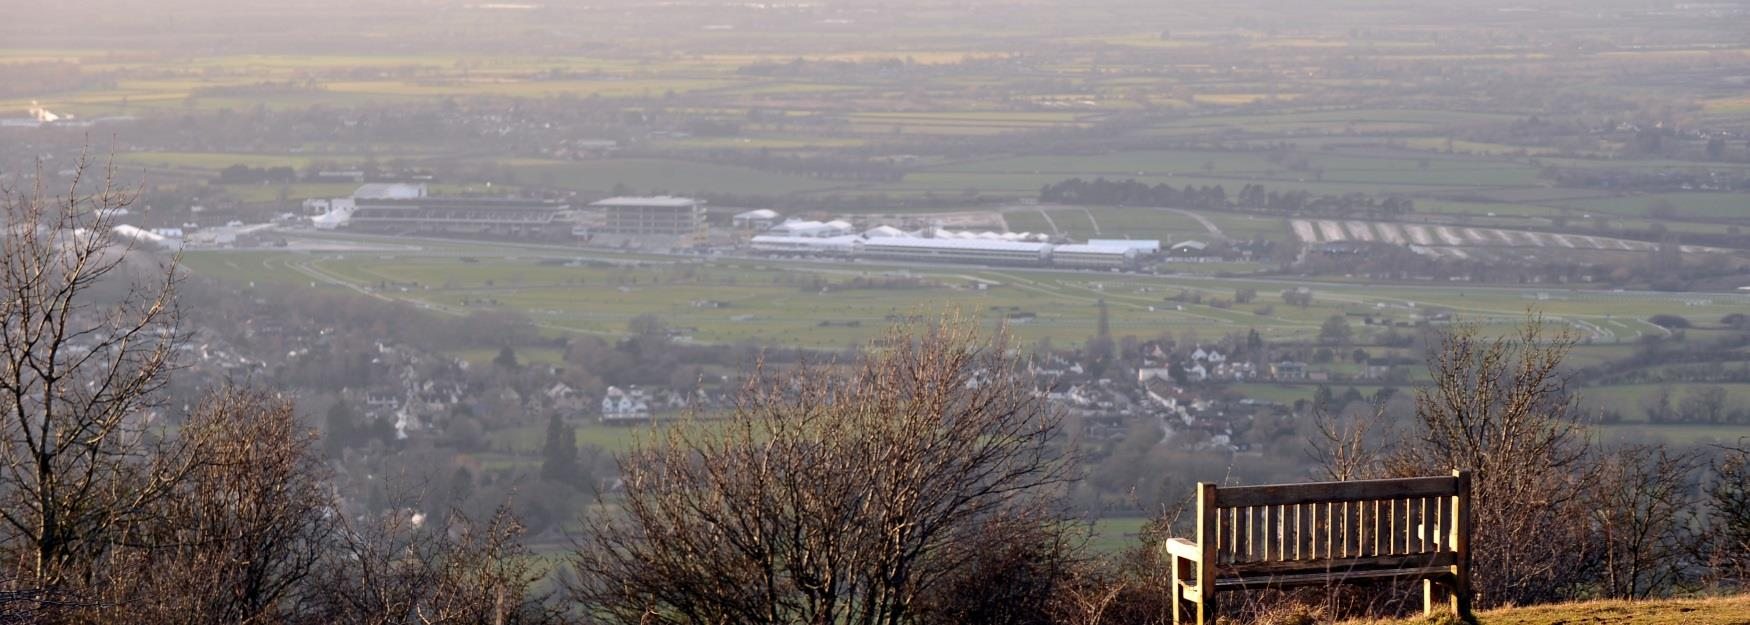 Spectacular view from Cleeve Hill overlooking Cheltenham racecourse